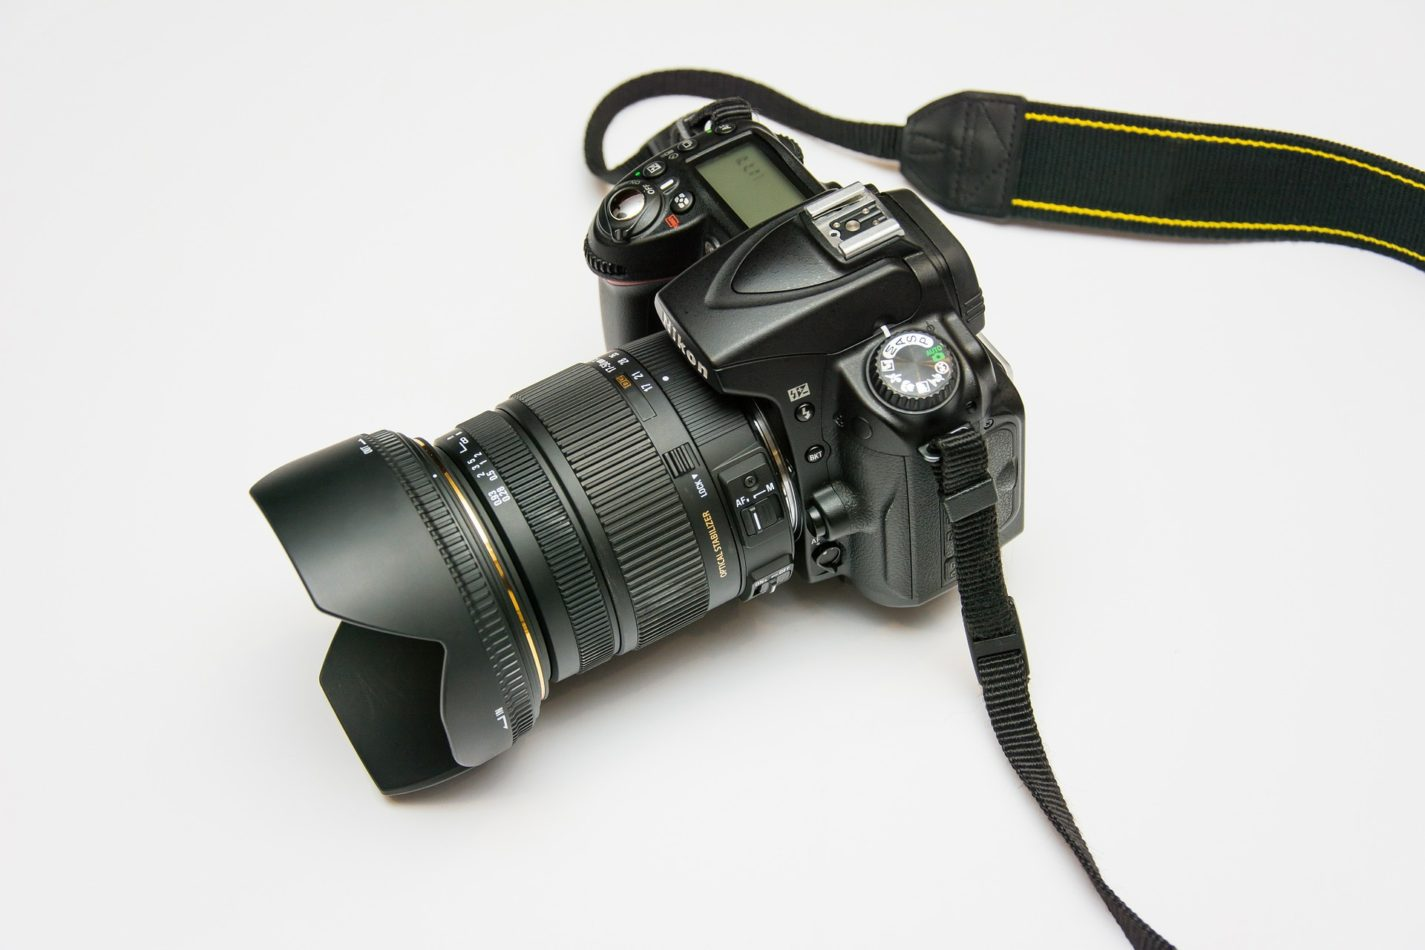 camera with long lens and strap